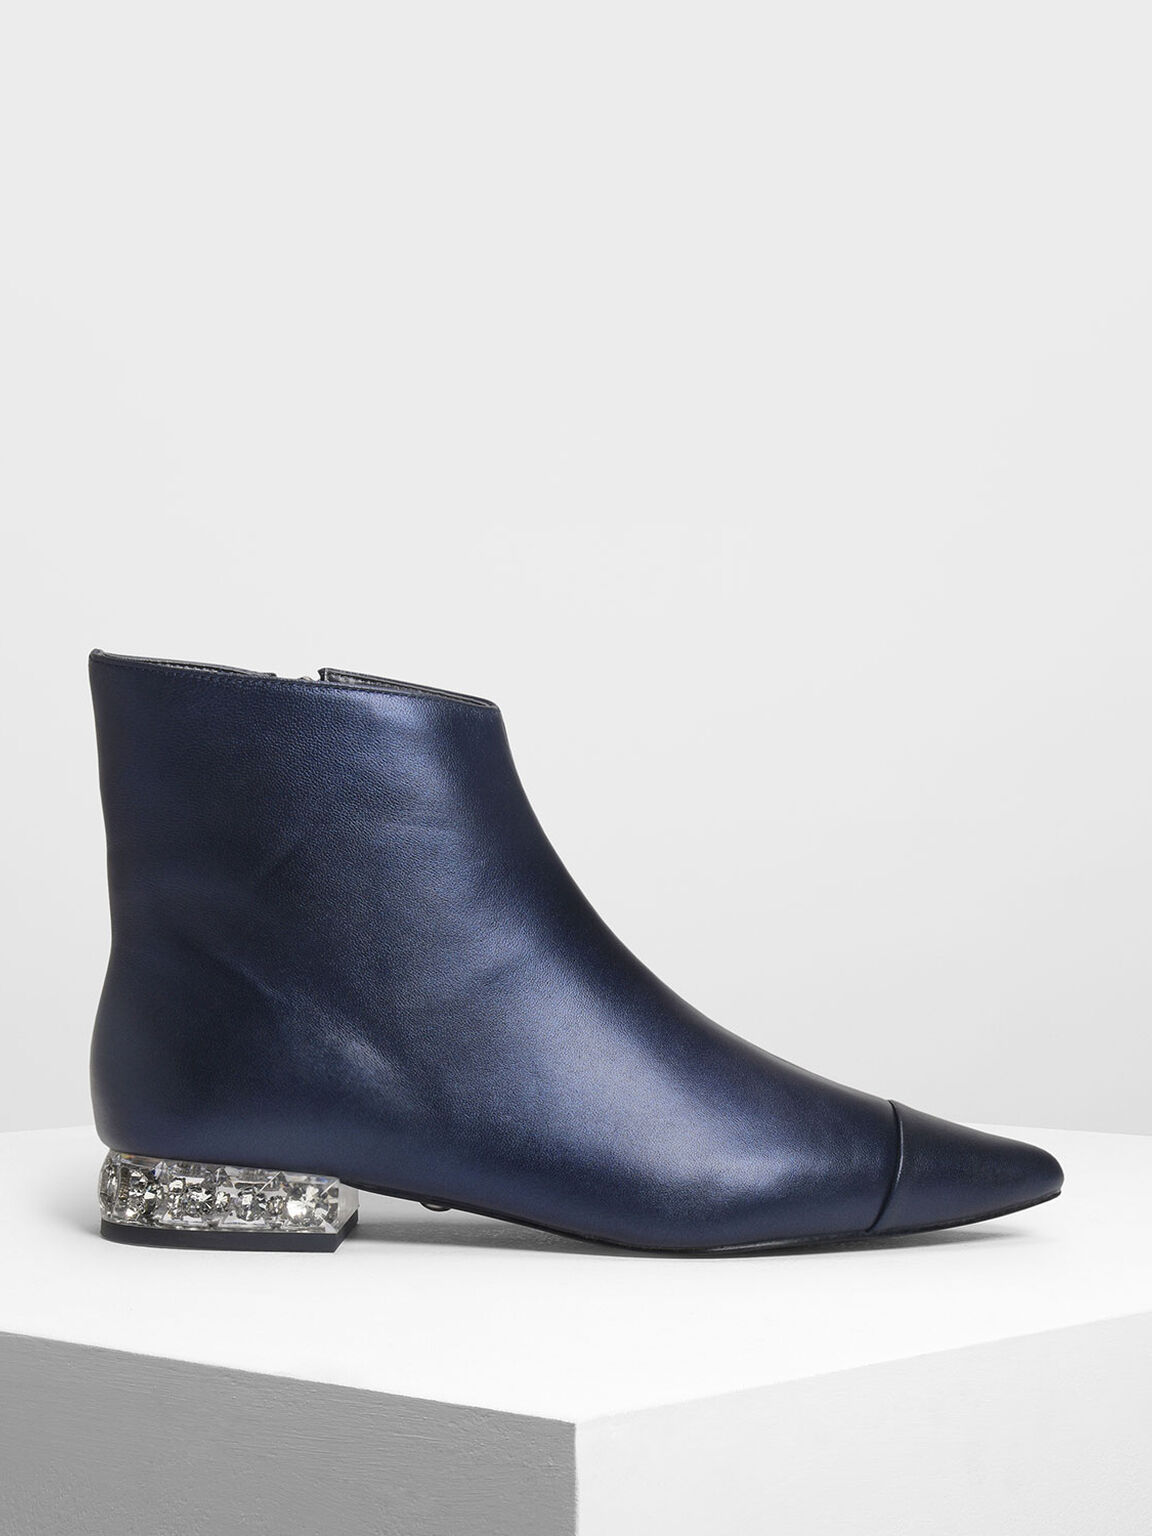 Faceted Lucite Heel Leather Boots, Dark Blue, hi-res